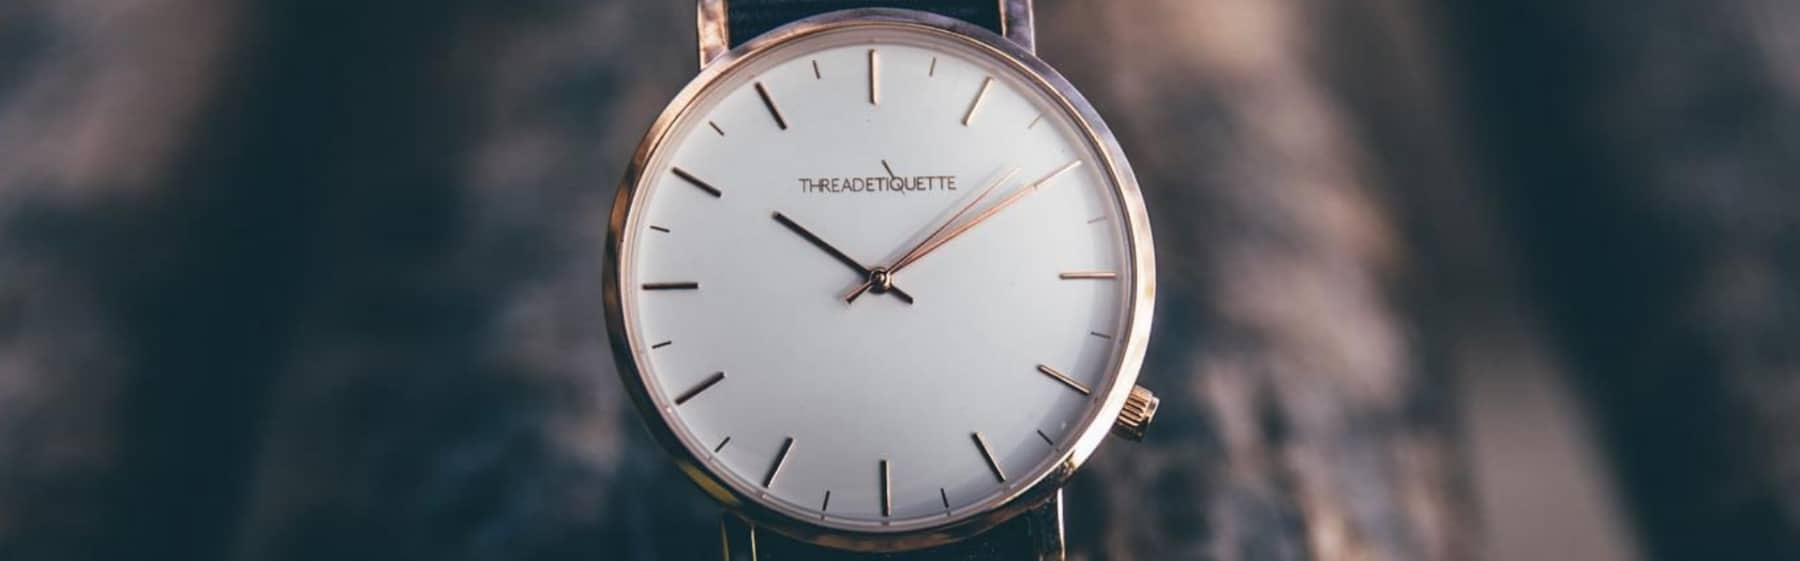 thread etiquette watch rose gold